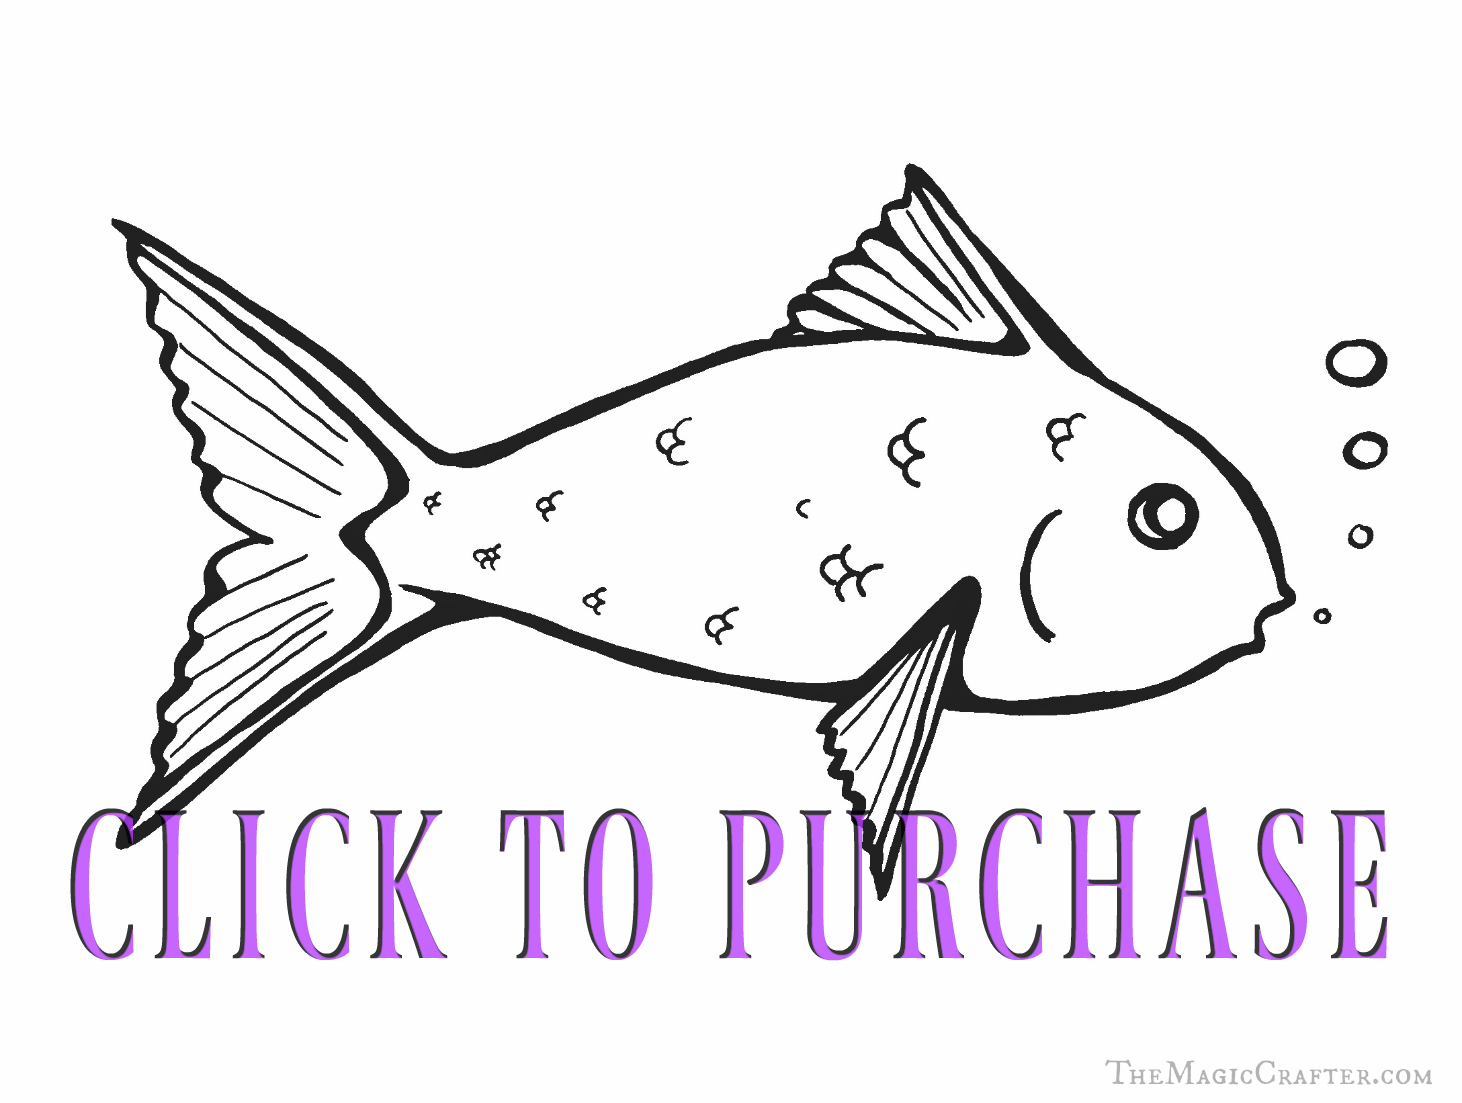 Cute Fish Coloring Pages! Click on this image to buy this downloadable picture from The Magic Crafter on Etsy! Once you purchase this adorable coloring sheet, you will be able to print off plenty of picture for your child's party or your special event! This picture is great for Mermaid, Pirate, and Under the Sea themed parties. It is also handy for Professional Mermaids to have on hand to print off and hand out at their events!